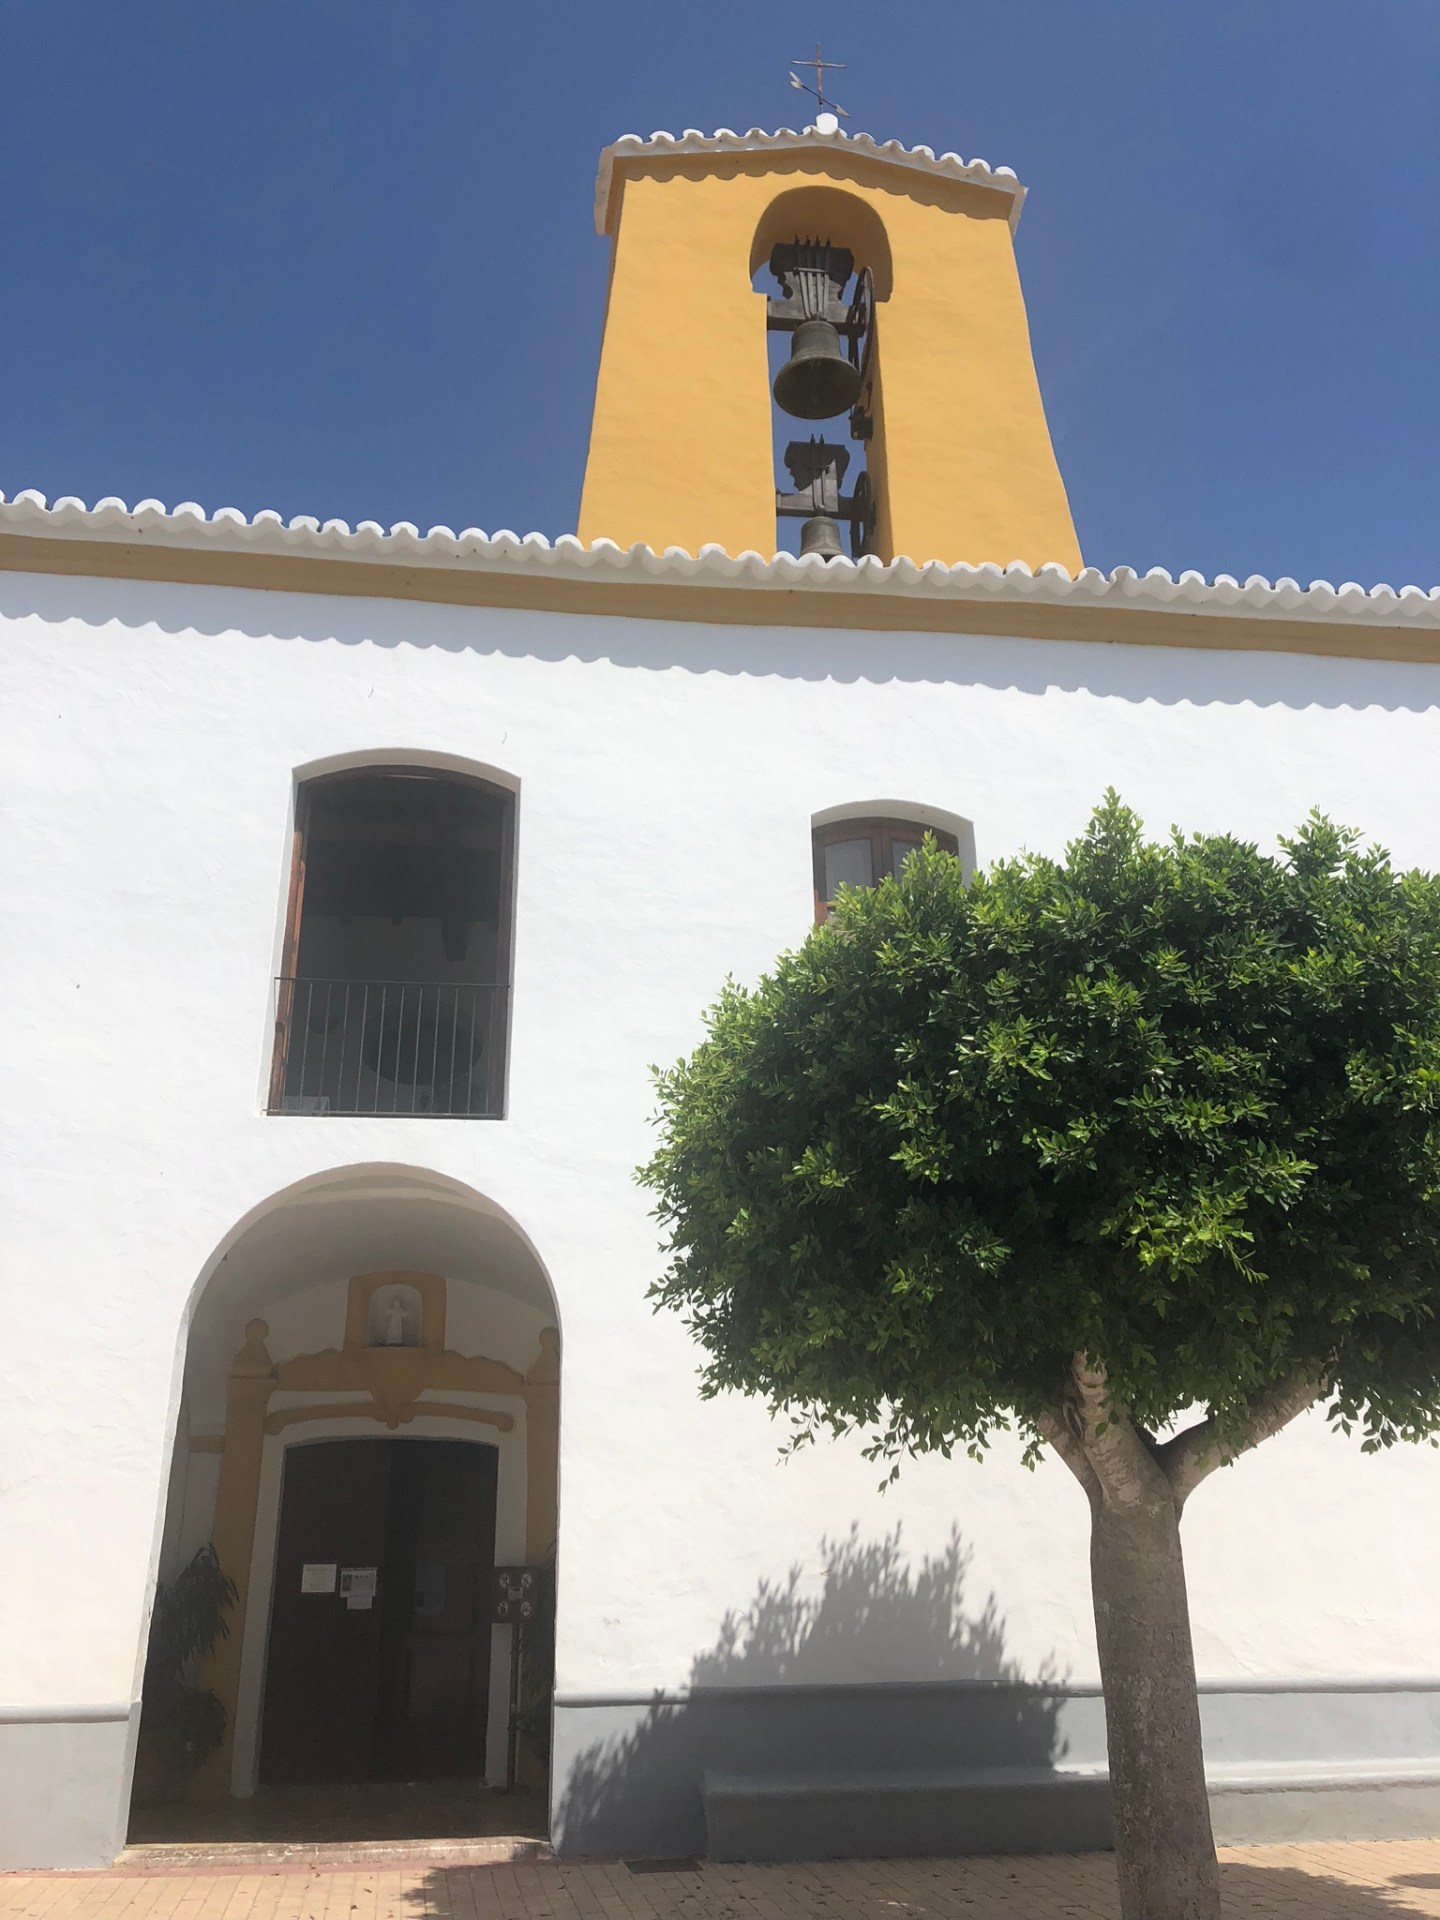 Best places to visit in Ibiza: Church in Santa Gertrudis, Ibiza